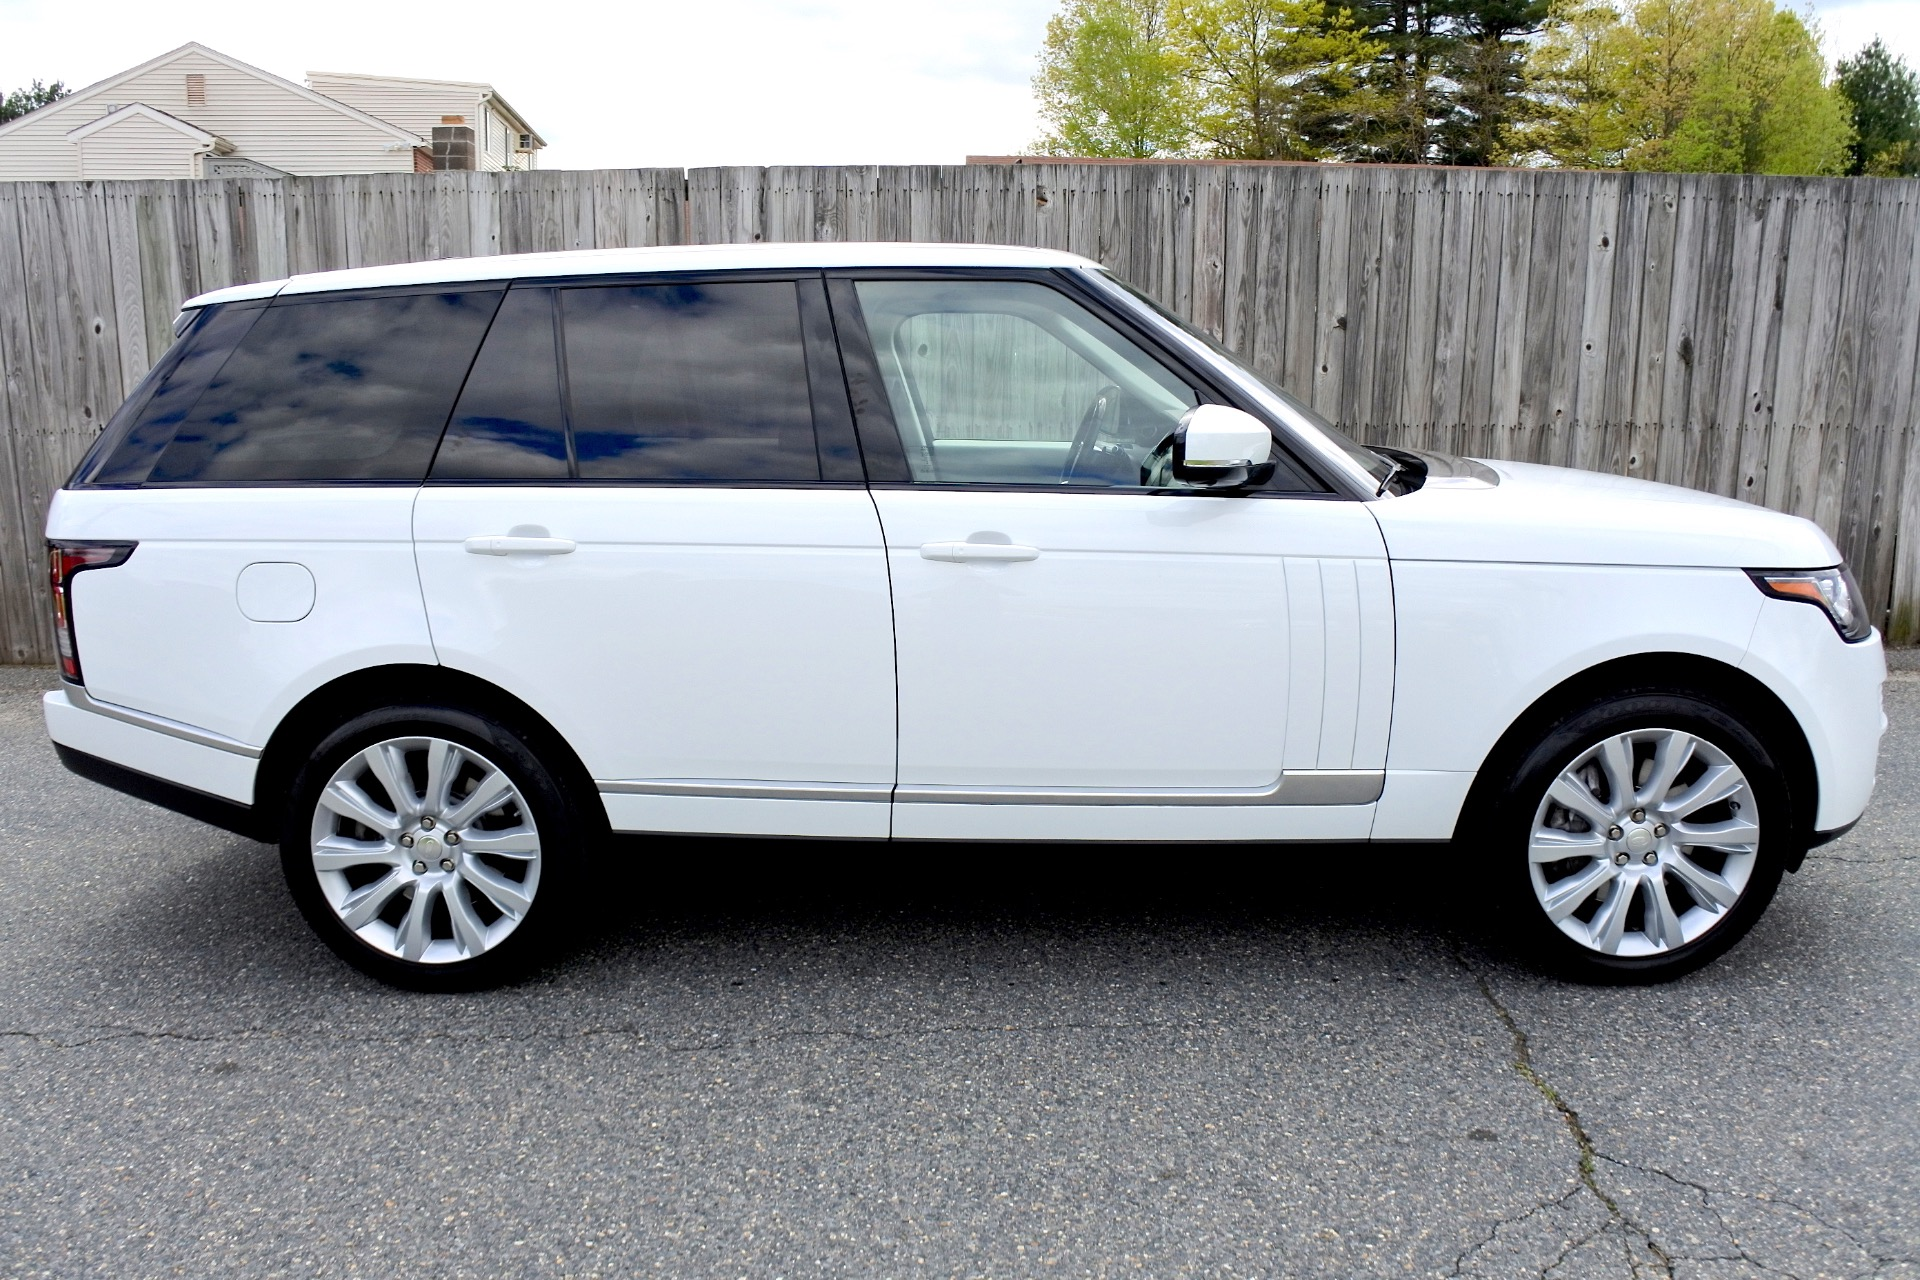 Used 2015 Land Rover Range Rover 4WD 4dr Supercharged Used 2015 Land Rover Range Rover 4WD 4dr Supercharged for sale  at Metro West Motorcars LLC in Shrewsbury MA 6